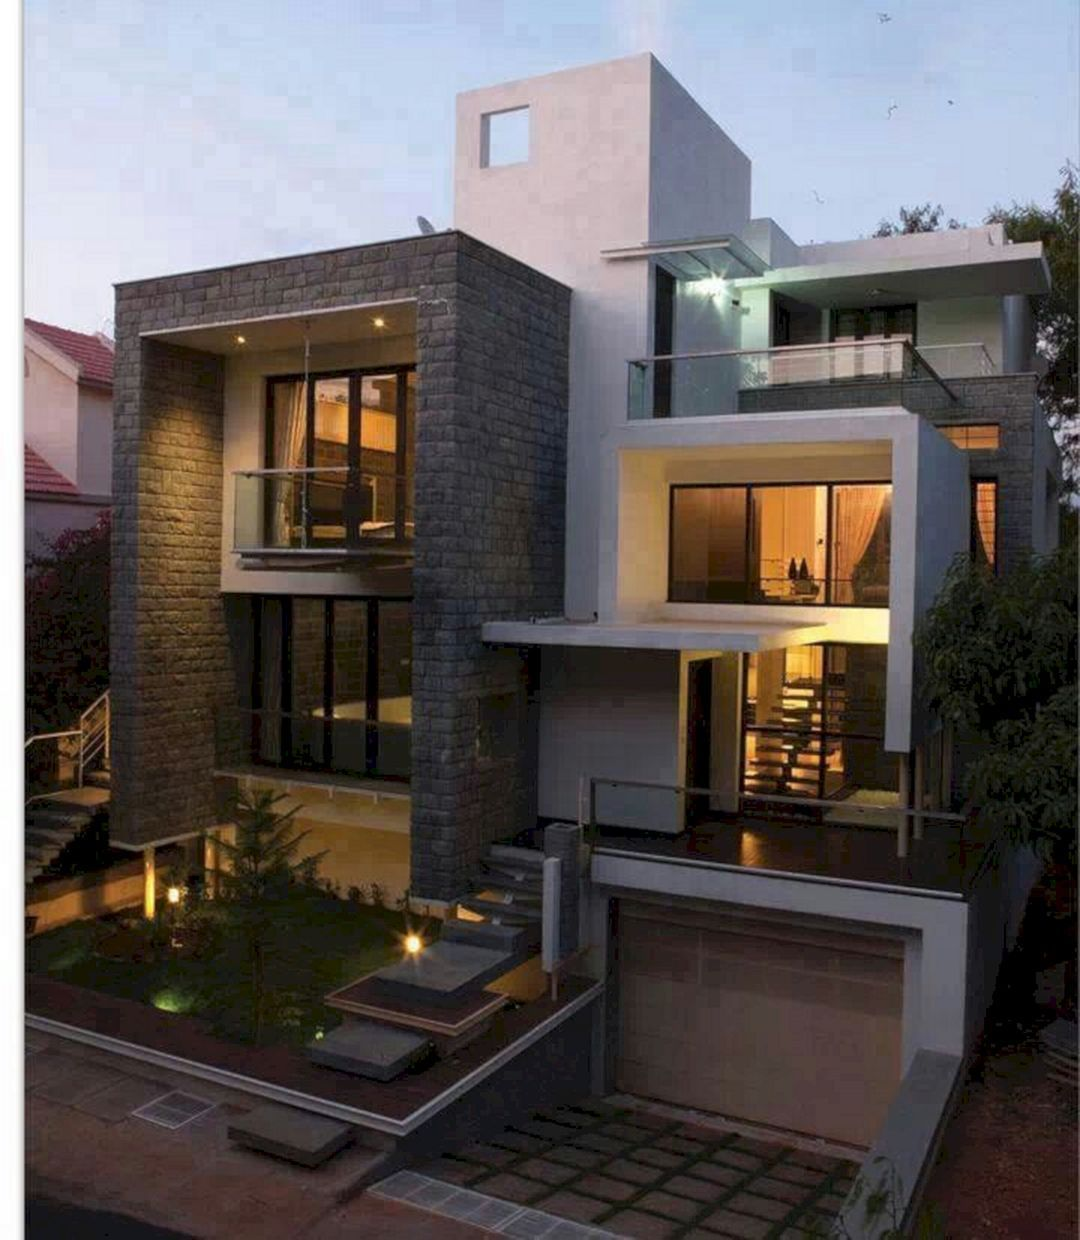 House With Underground Garage Decoredo House Designs Exterior Facade House House Exterior